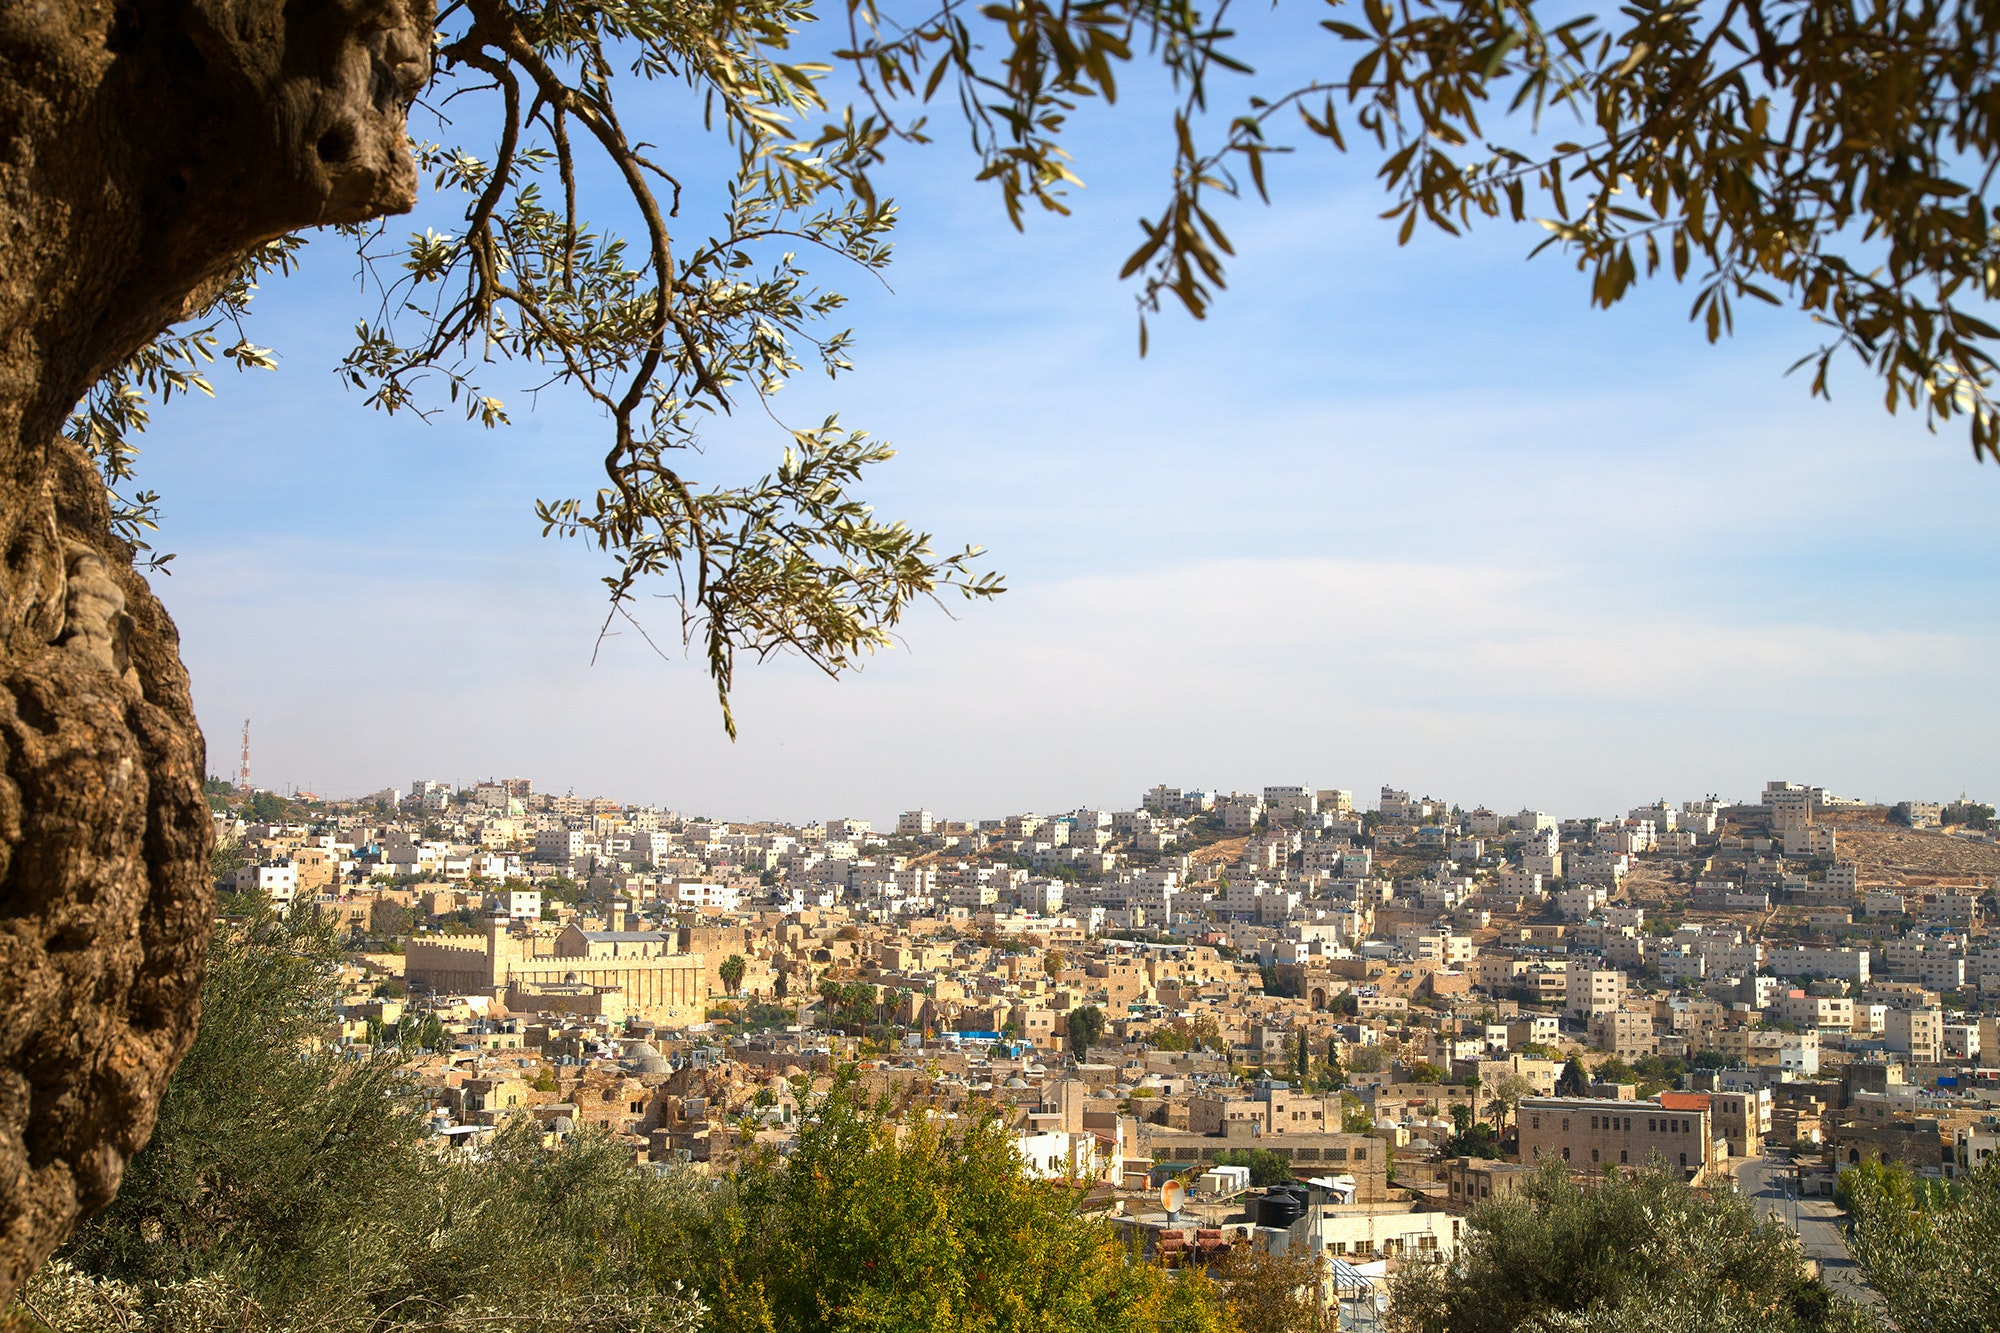 View of Hebron from the West Bank of Palestine